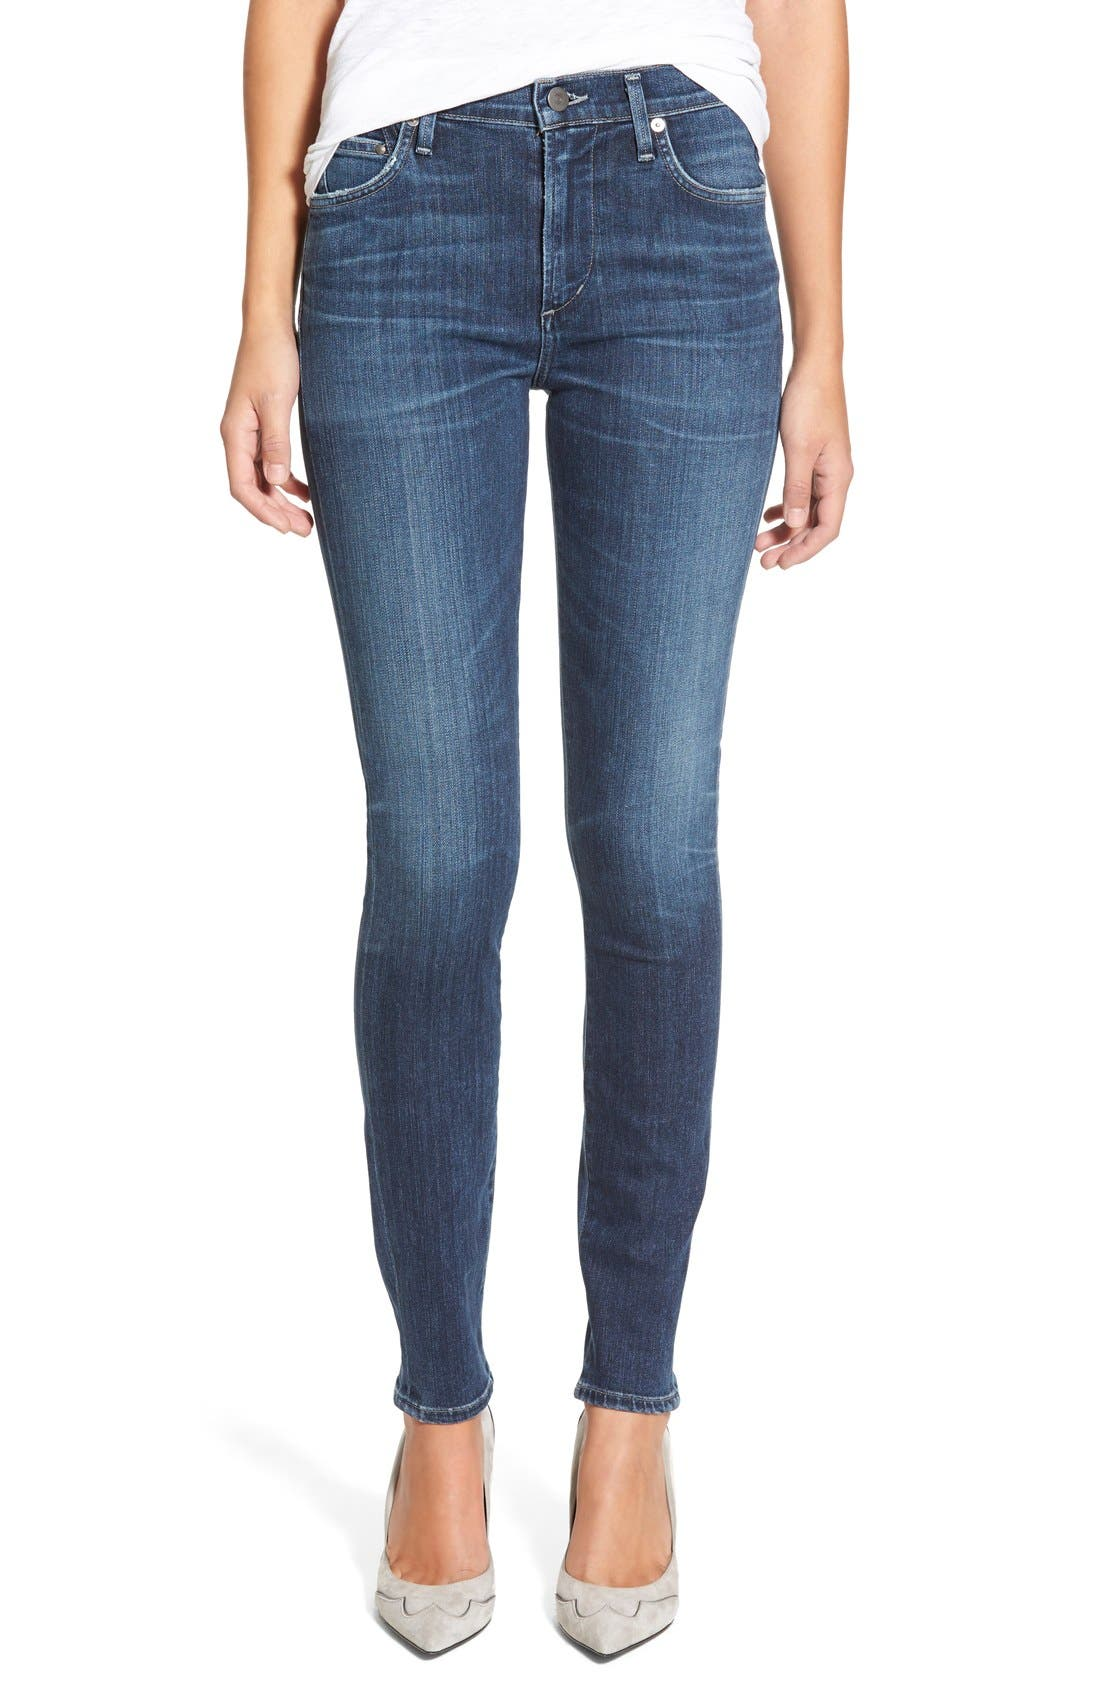 Citizens of Humanity Rocket High Waist Skinny Jeans (Albion)